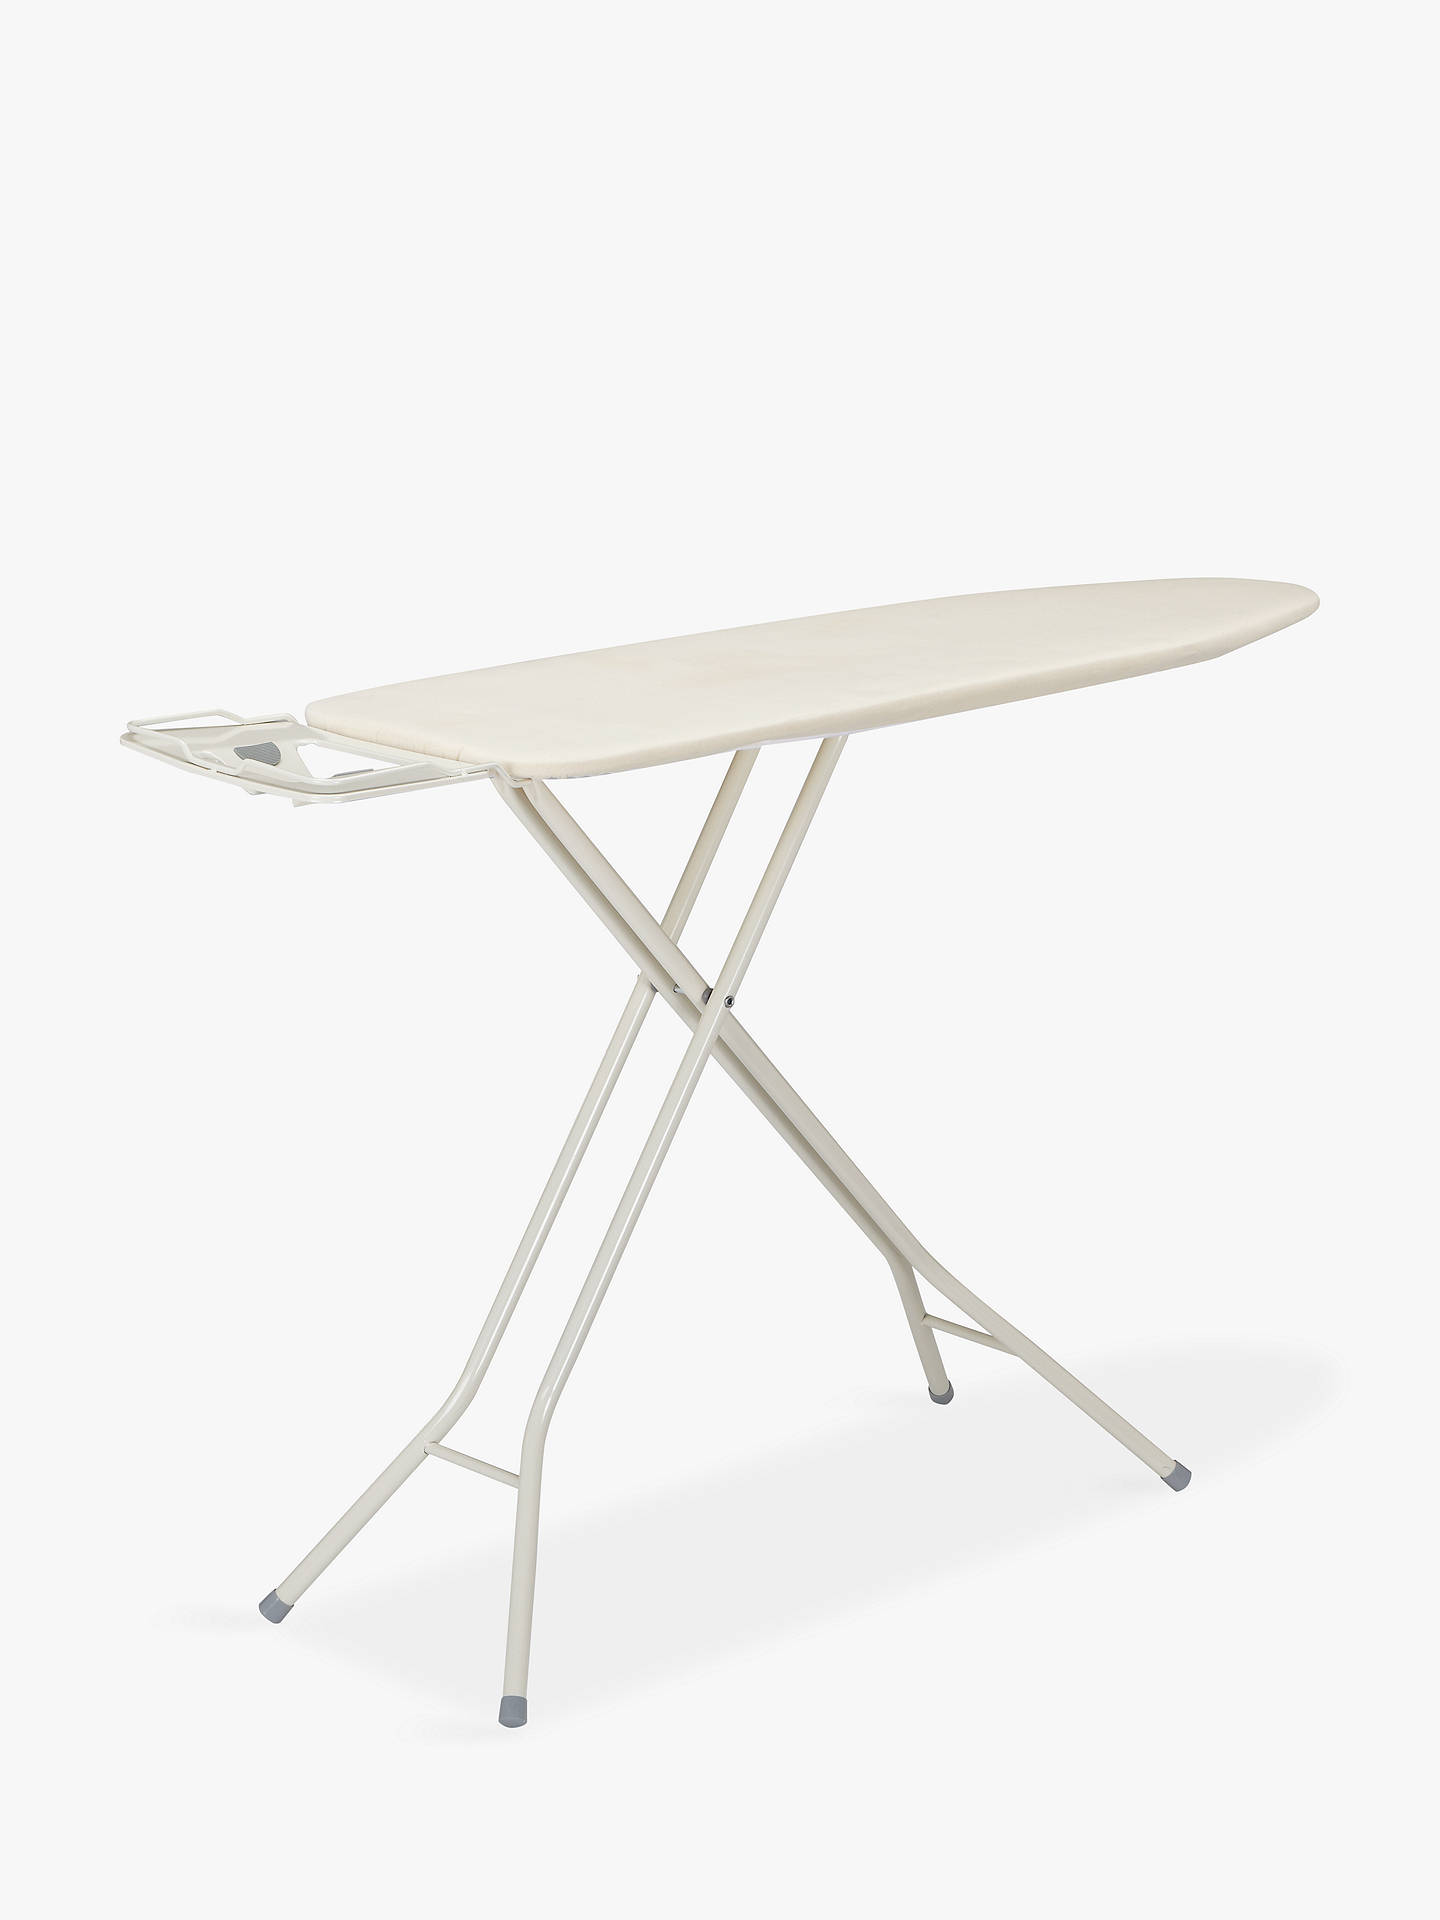 caeaa7402f46 Buy John Lewis & Partners Buxton Ironing Board, L122 x W38cm Online at  johnlewis.